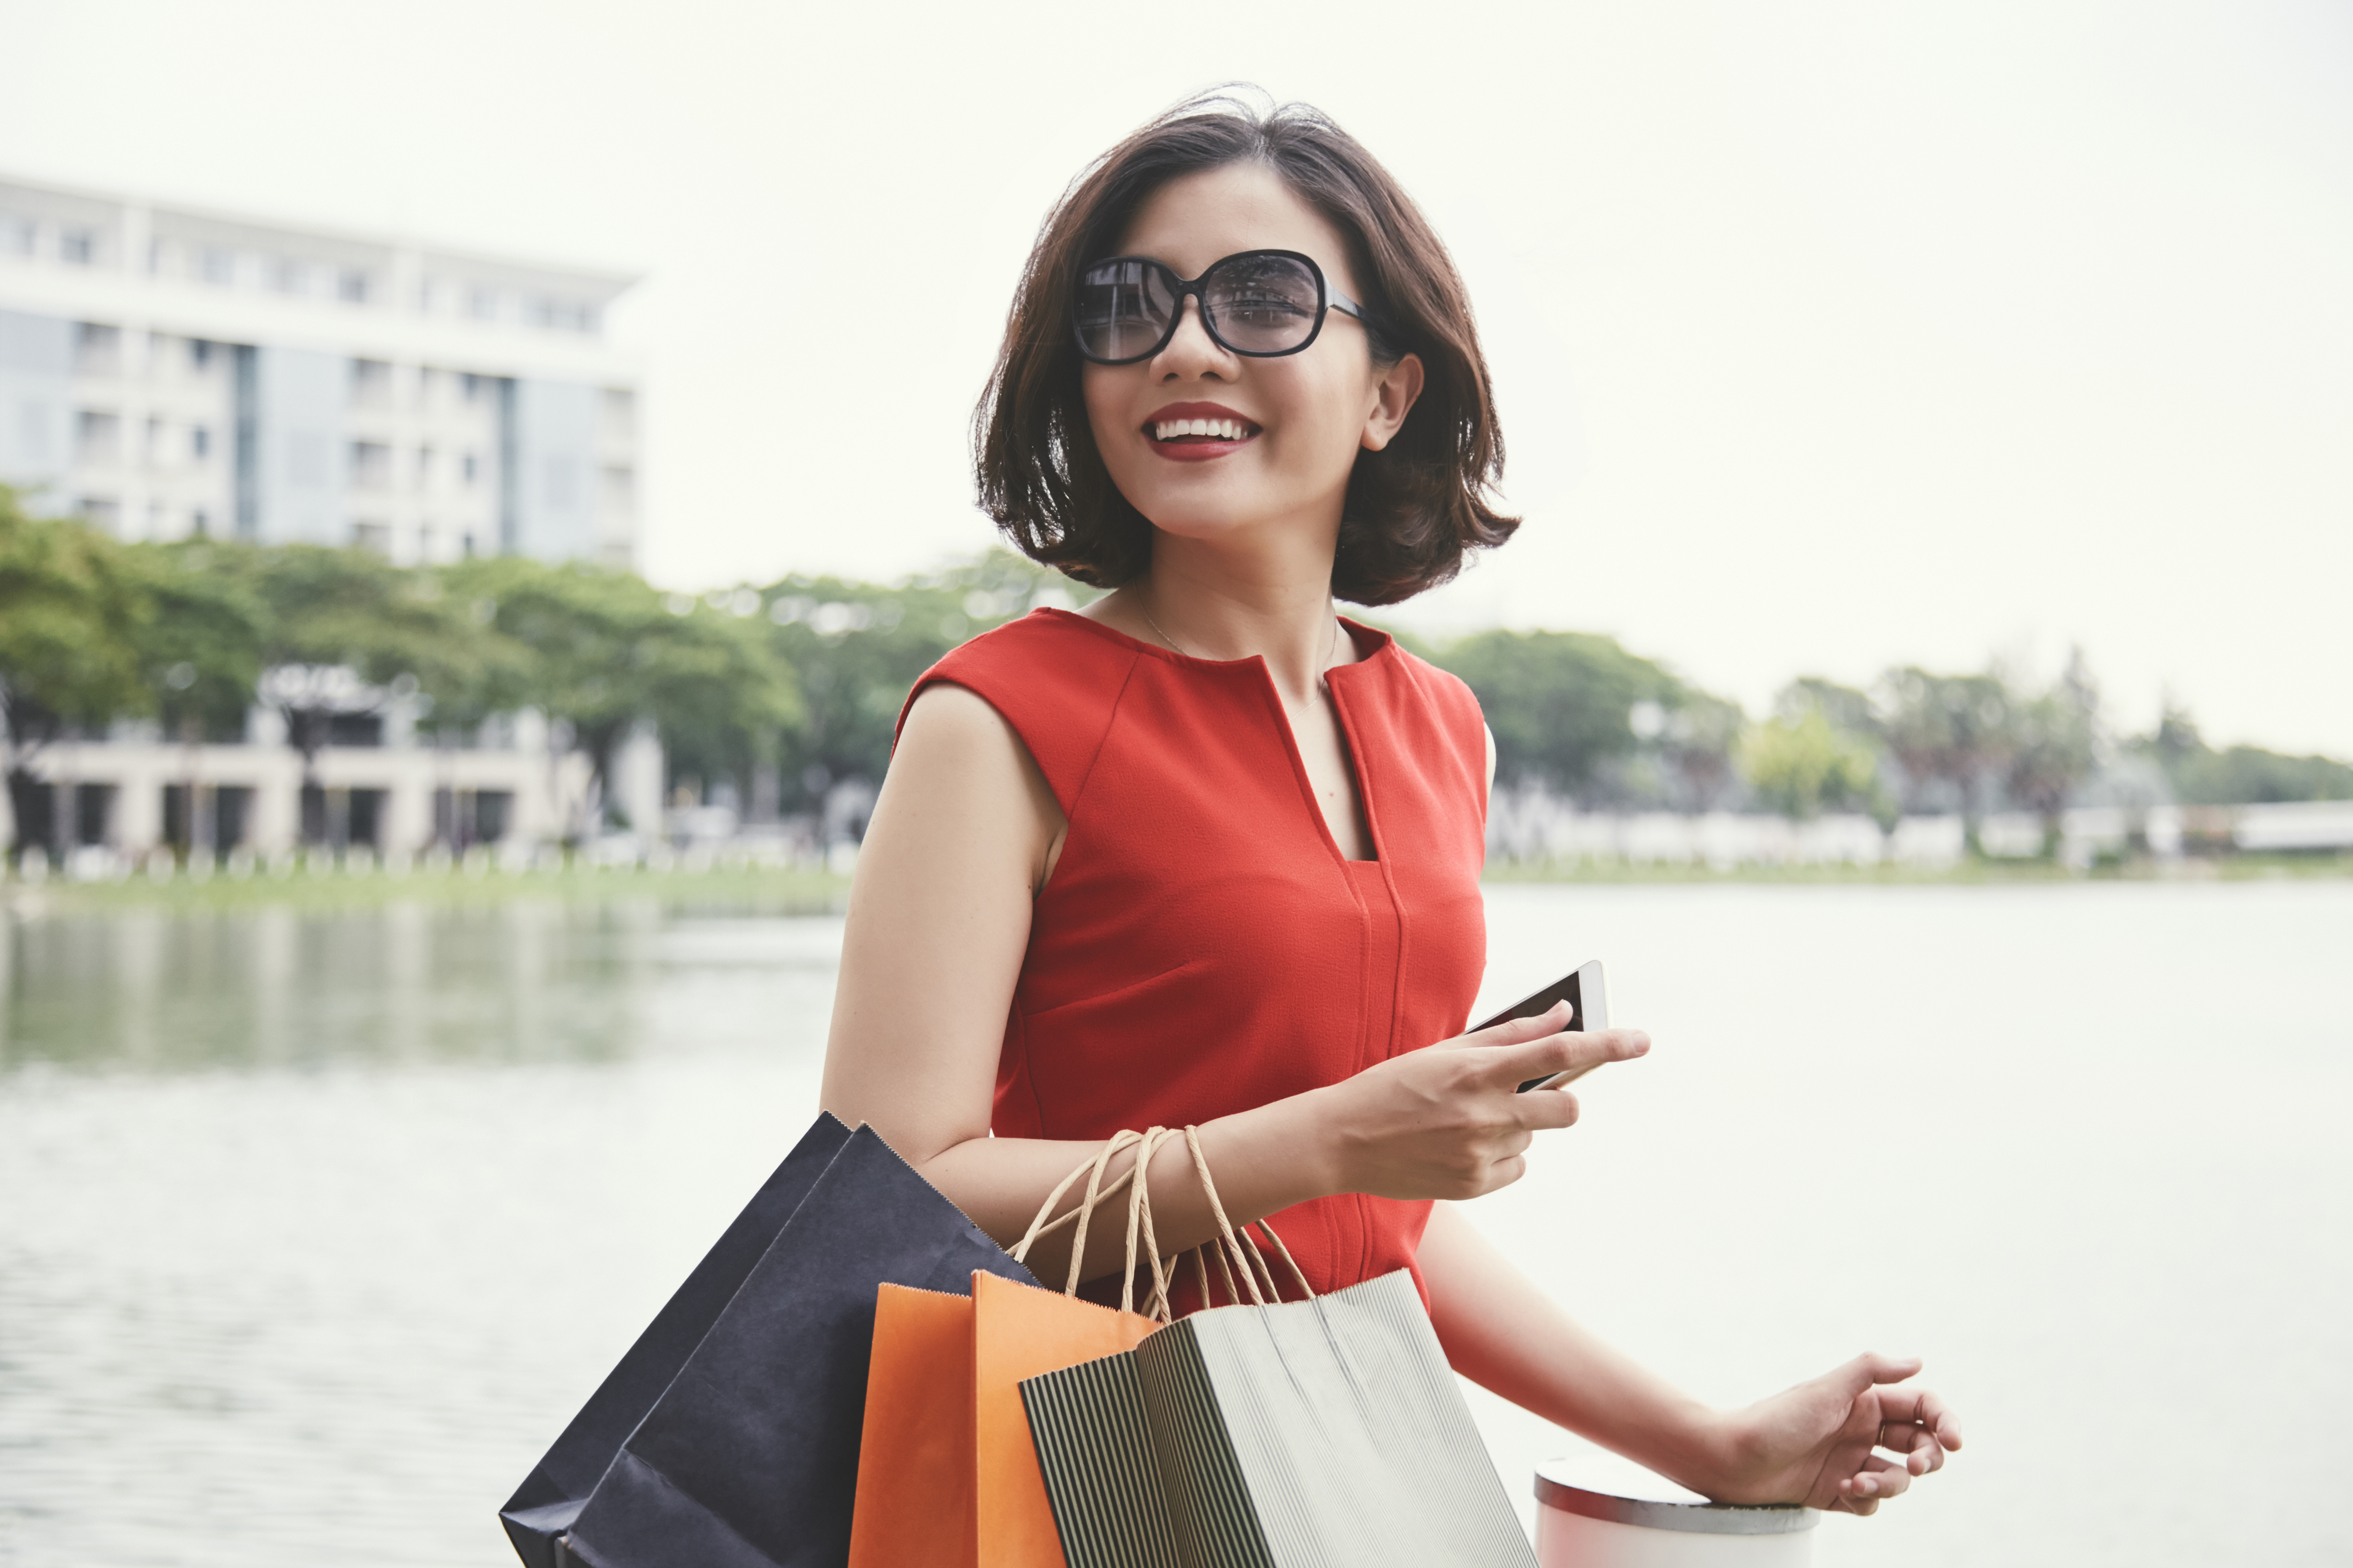 beautiful-woman-with-shopping-bags-DJ98FR3